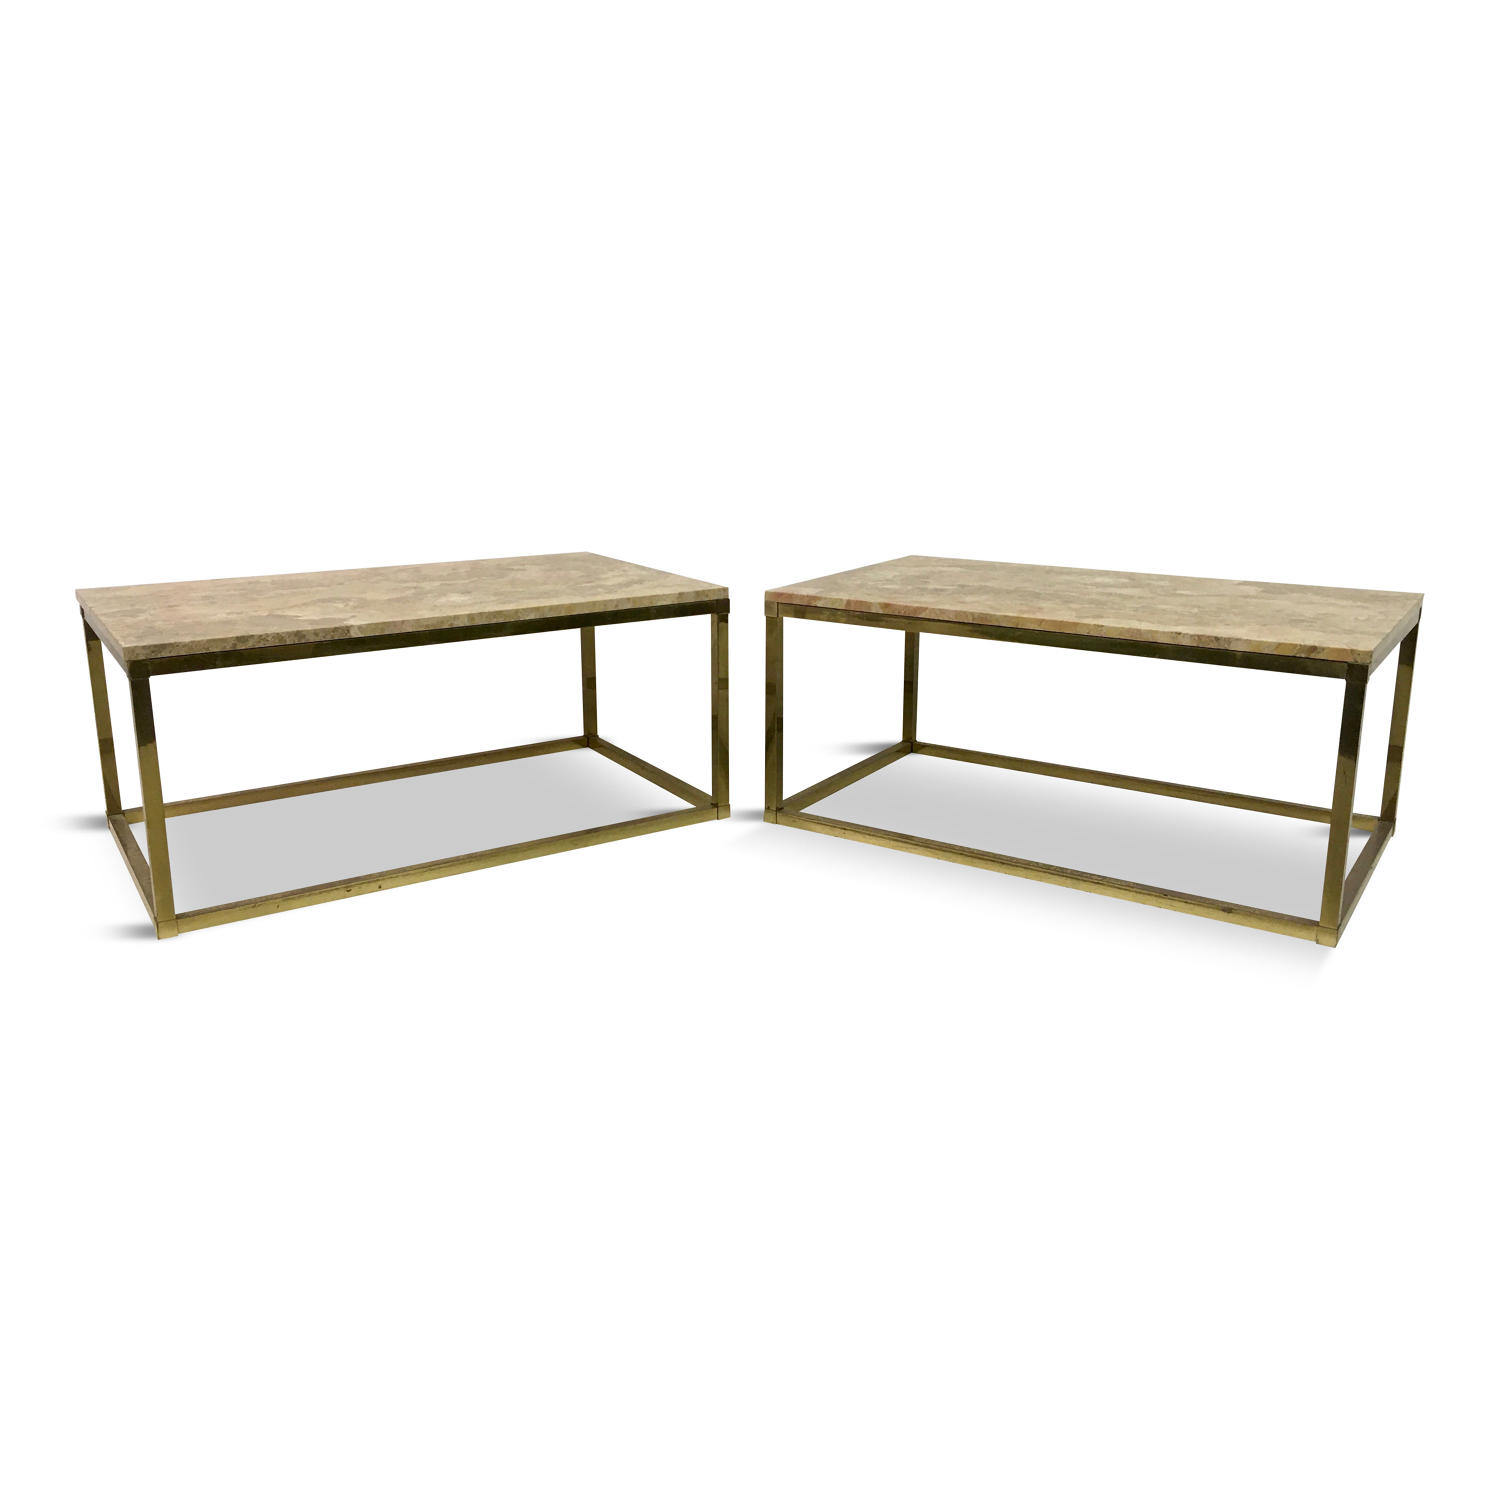 A pair of brass and marble coffee tables